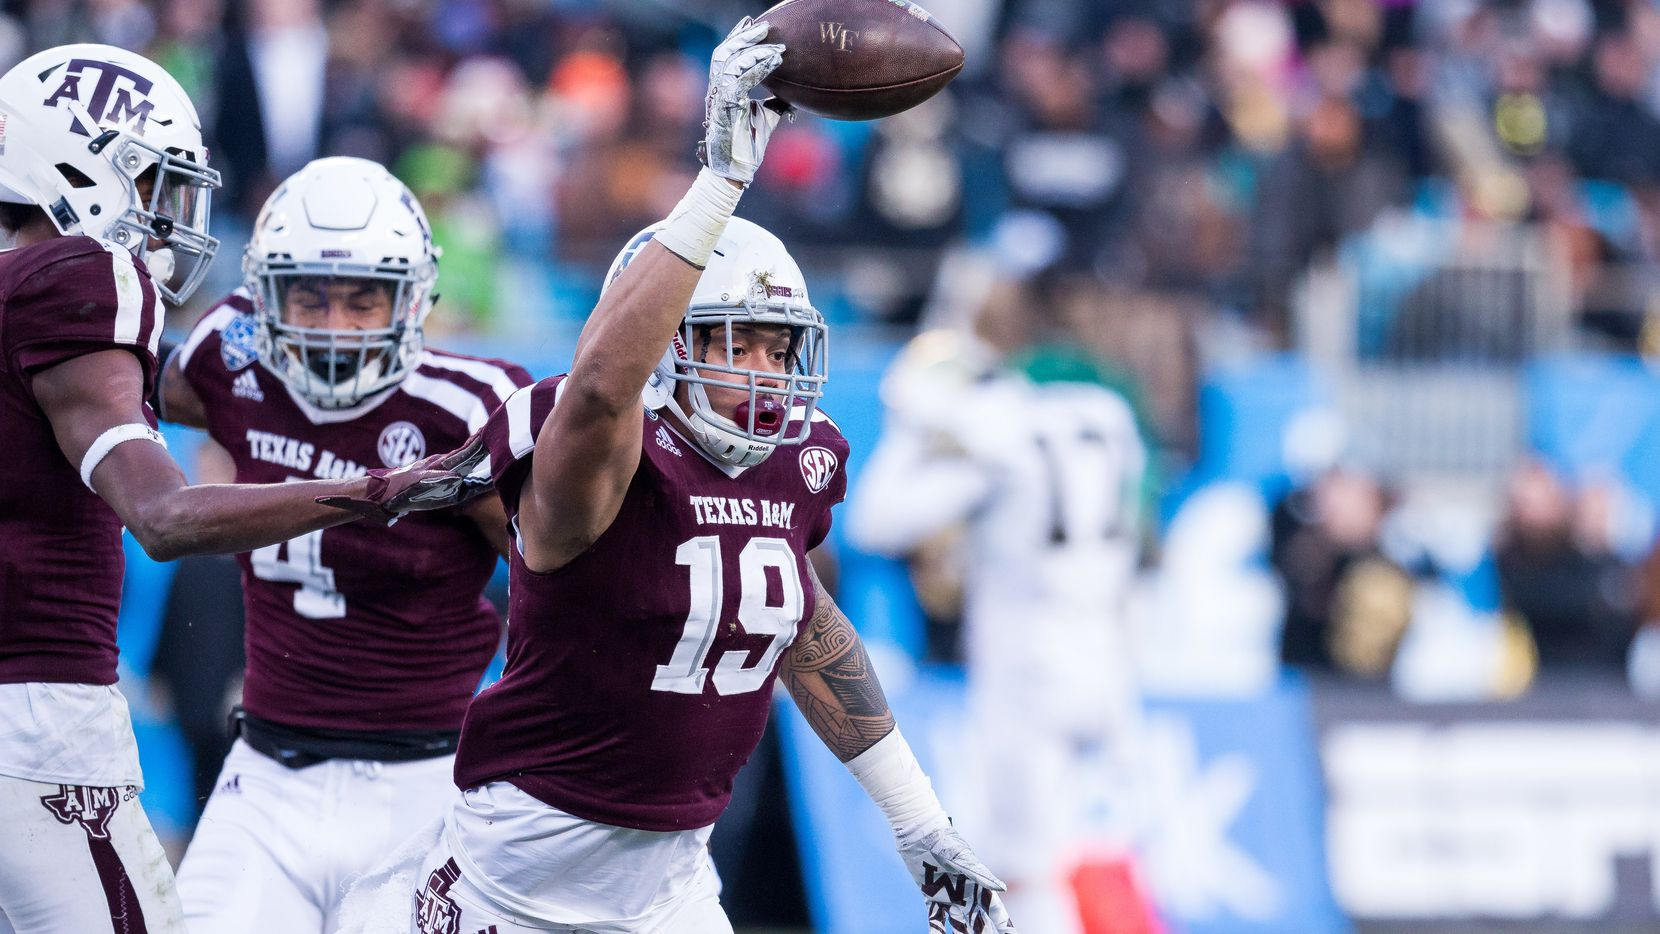 December 29, 2017: Texas A&M linebacker Anthony Hines III (19) celebrates after recovering the fumble in the matchup between Texas A&M and Wake Forest at Bank of America Stadium in Charlotte, NC.